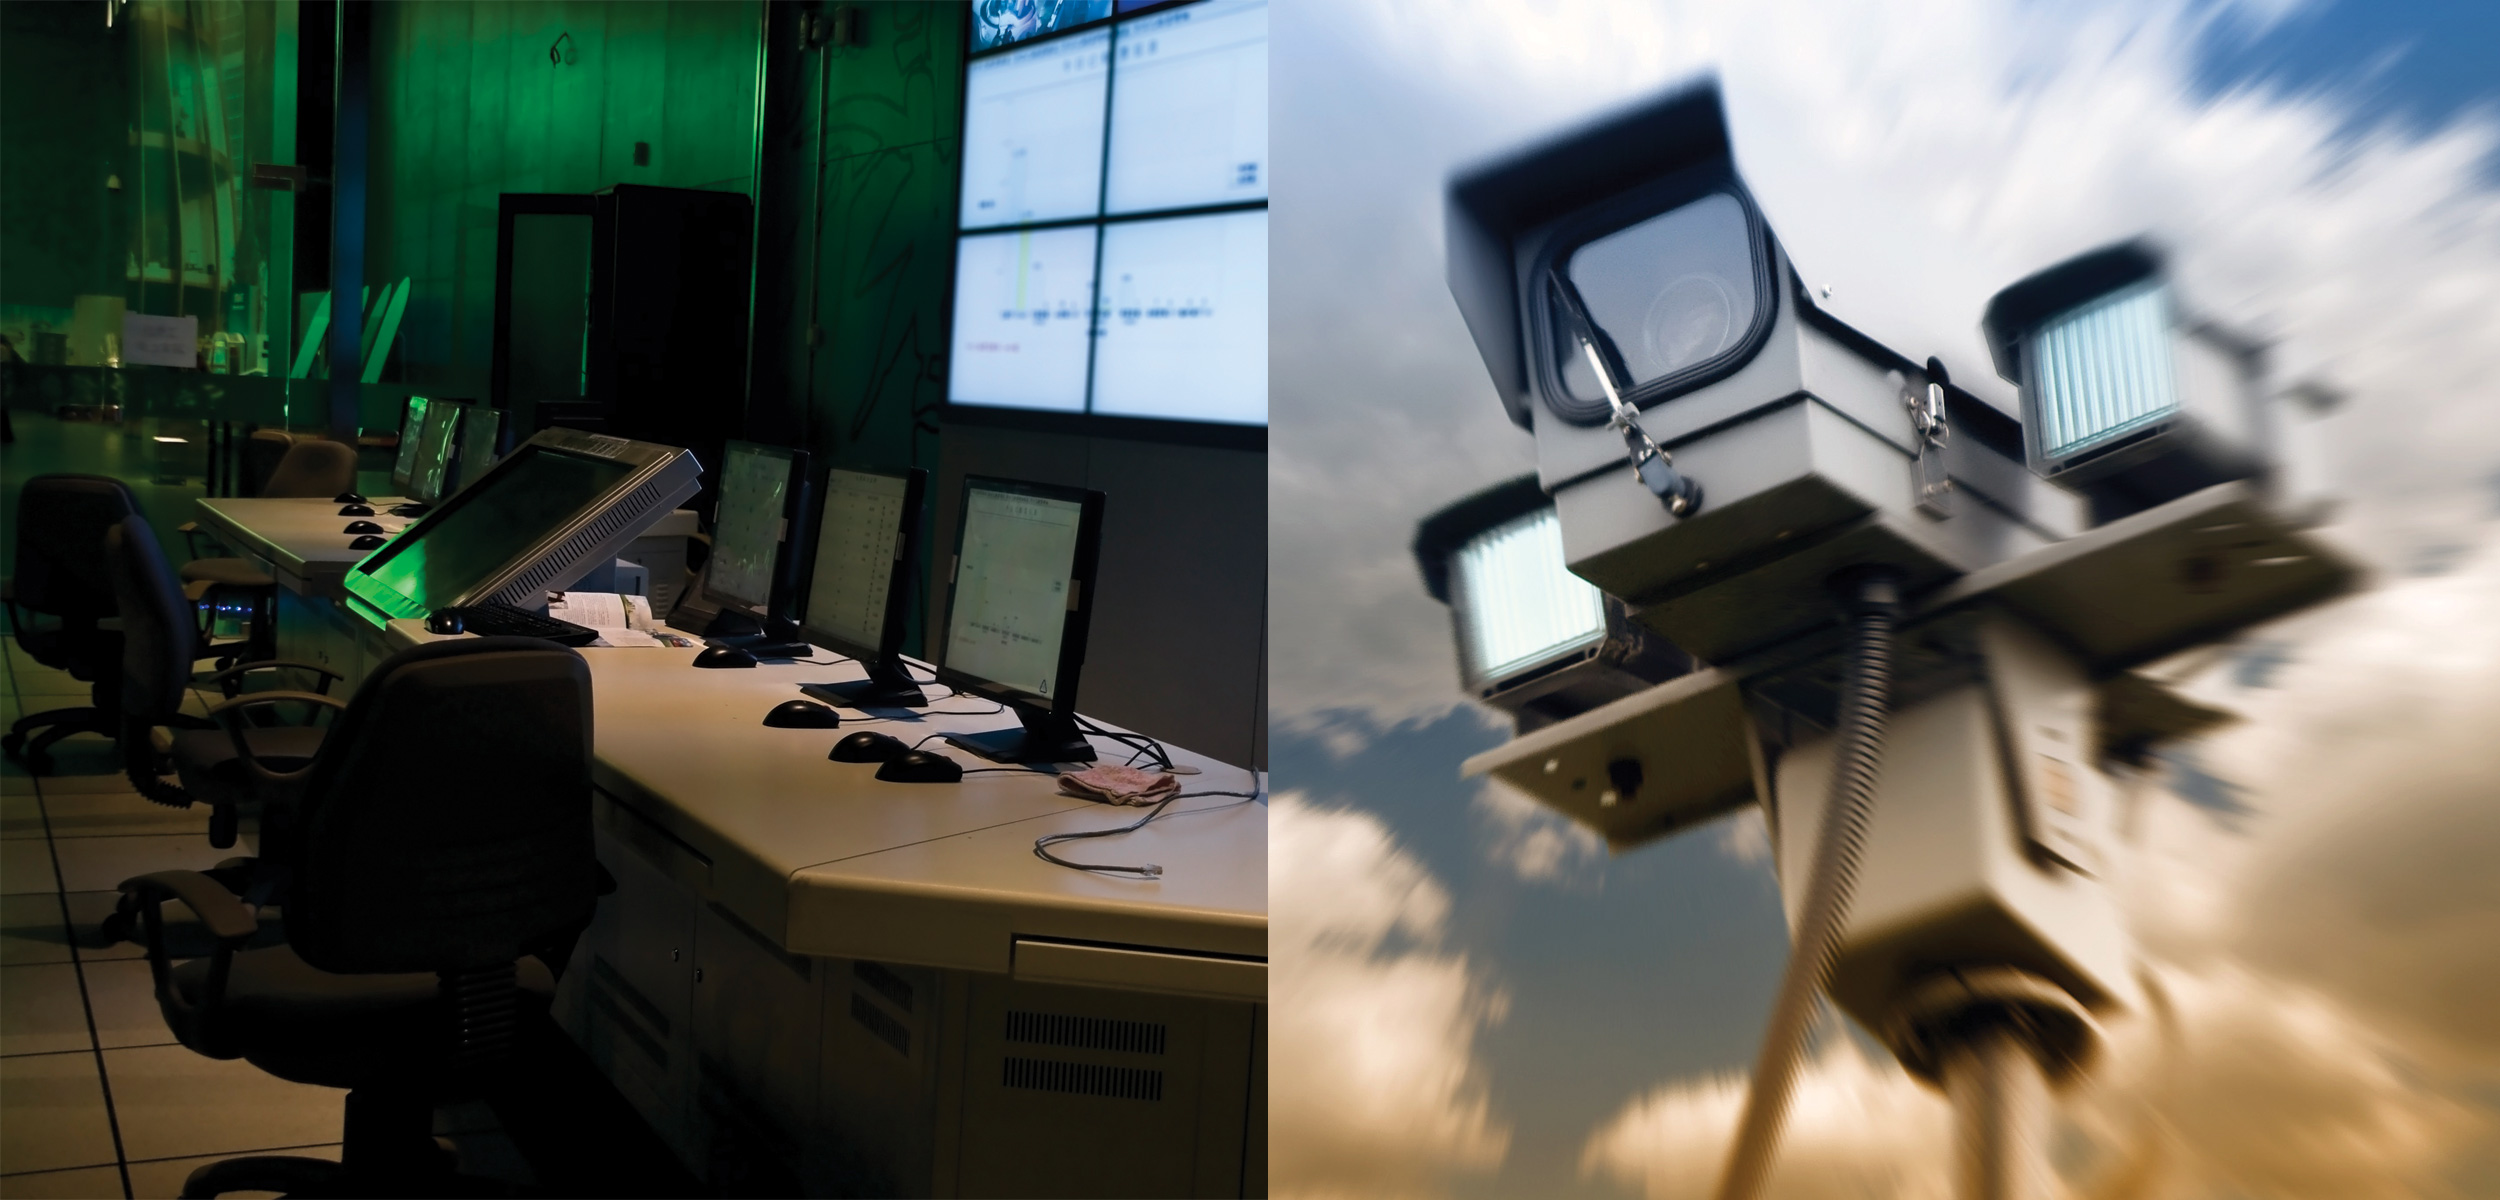 Axis_CameraSecurity